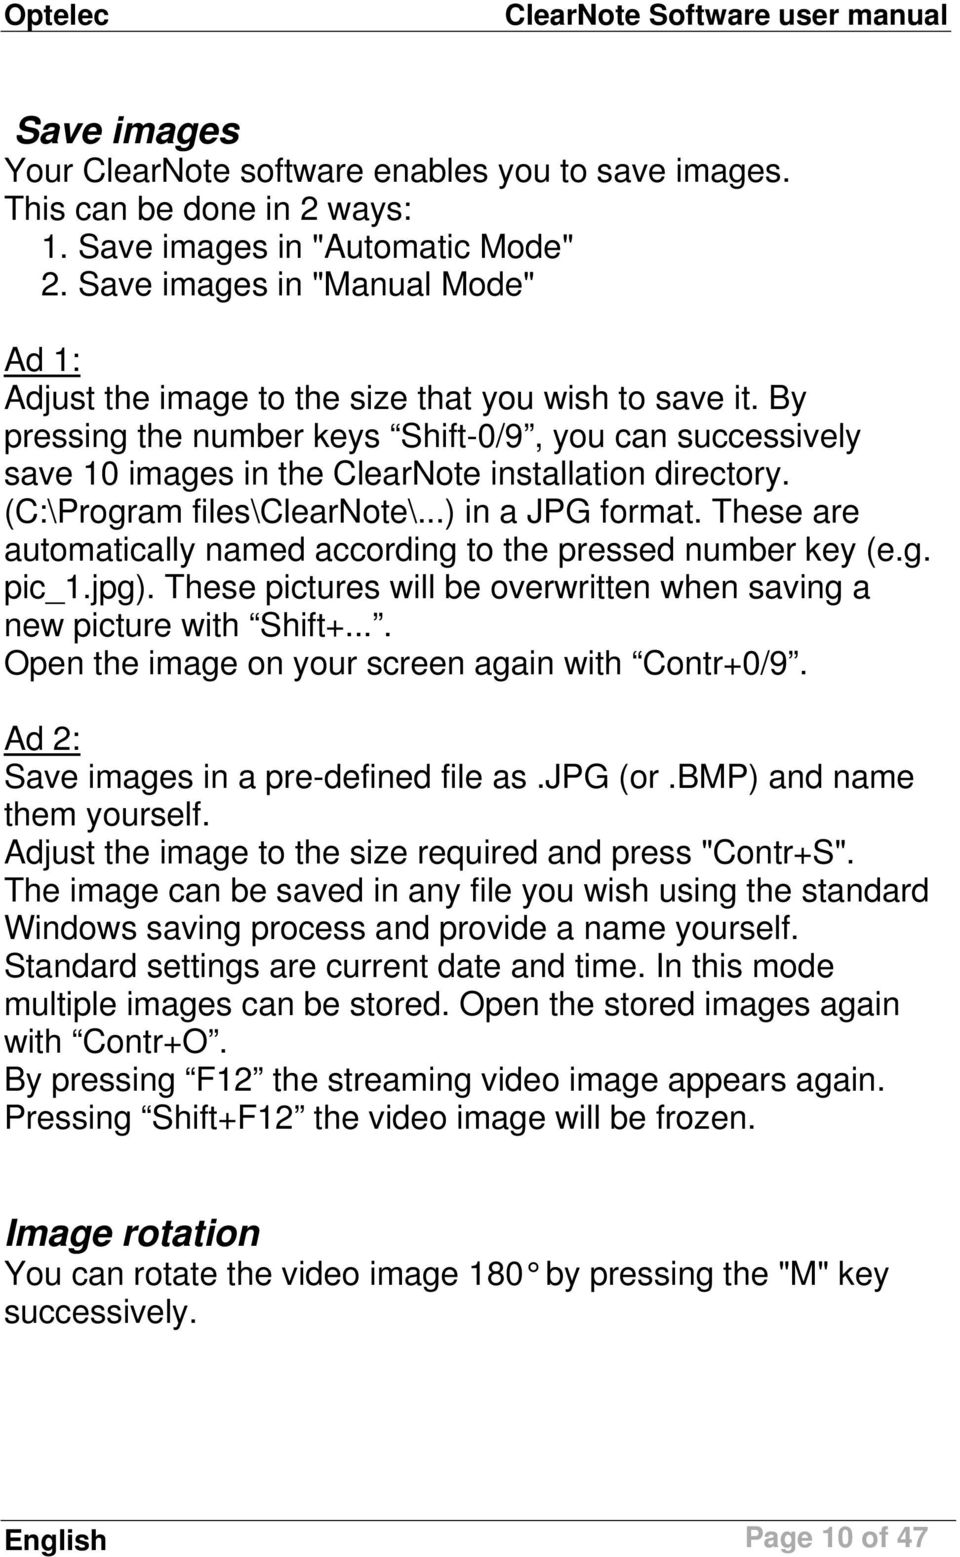 By pressing the number keys Shift-0/9, you can successively save 10 images in the ClearNote installation directory. (C:\Program files\clearnote\...) in a JPG format.